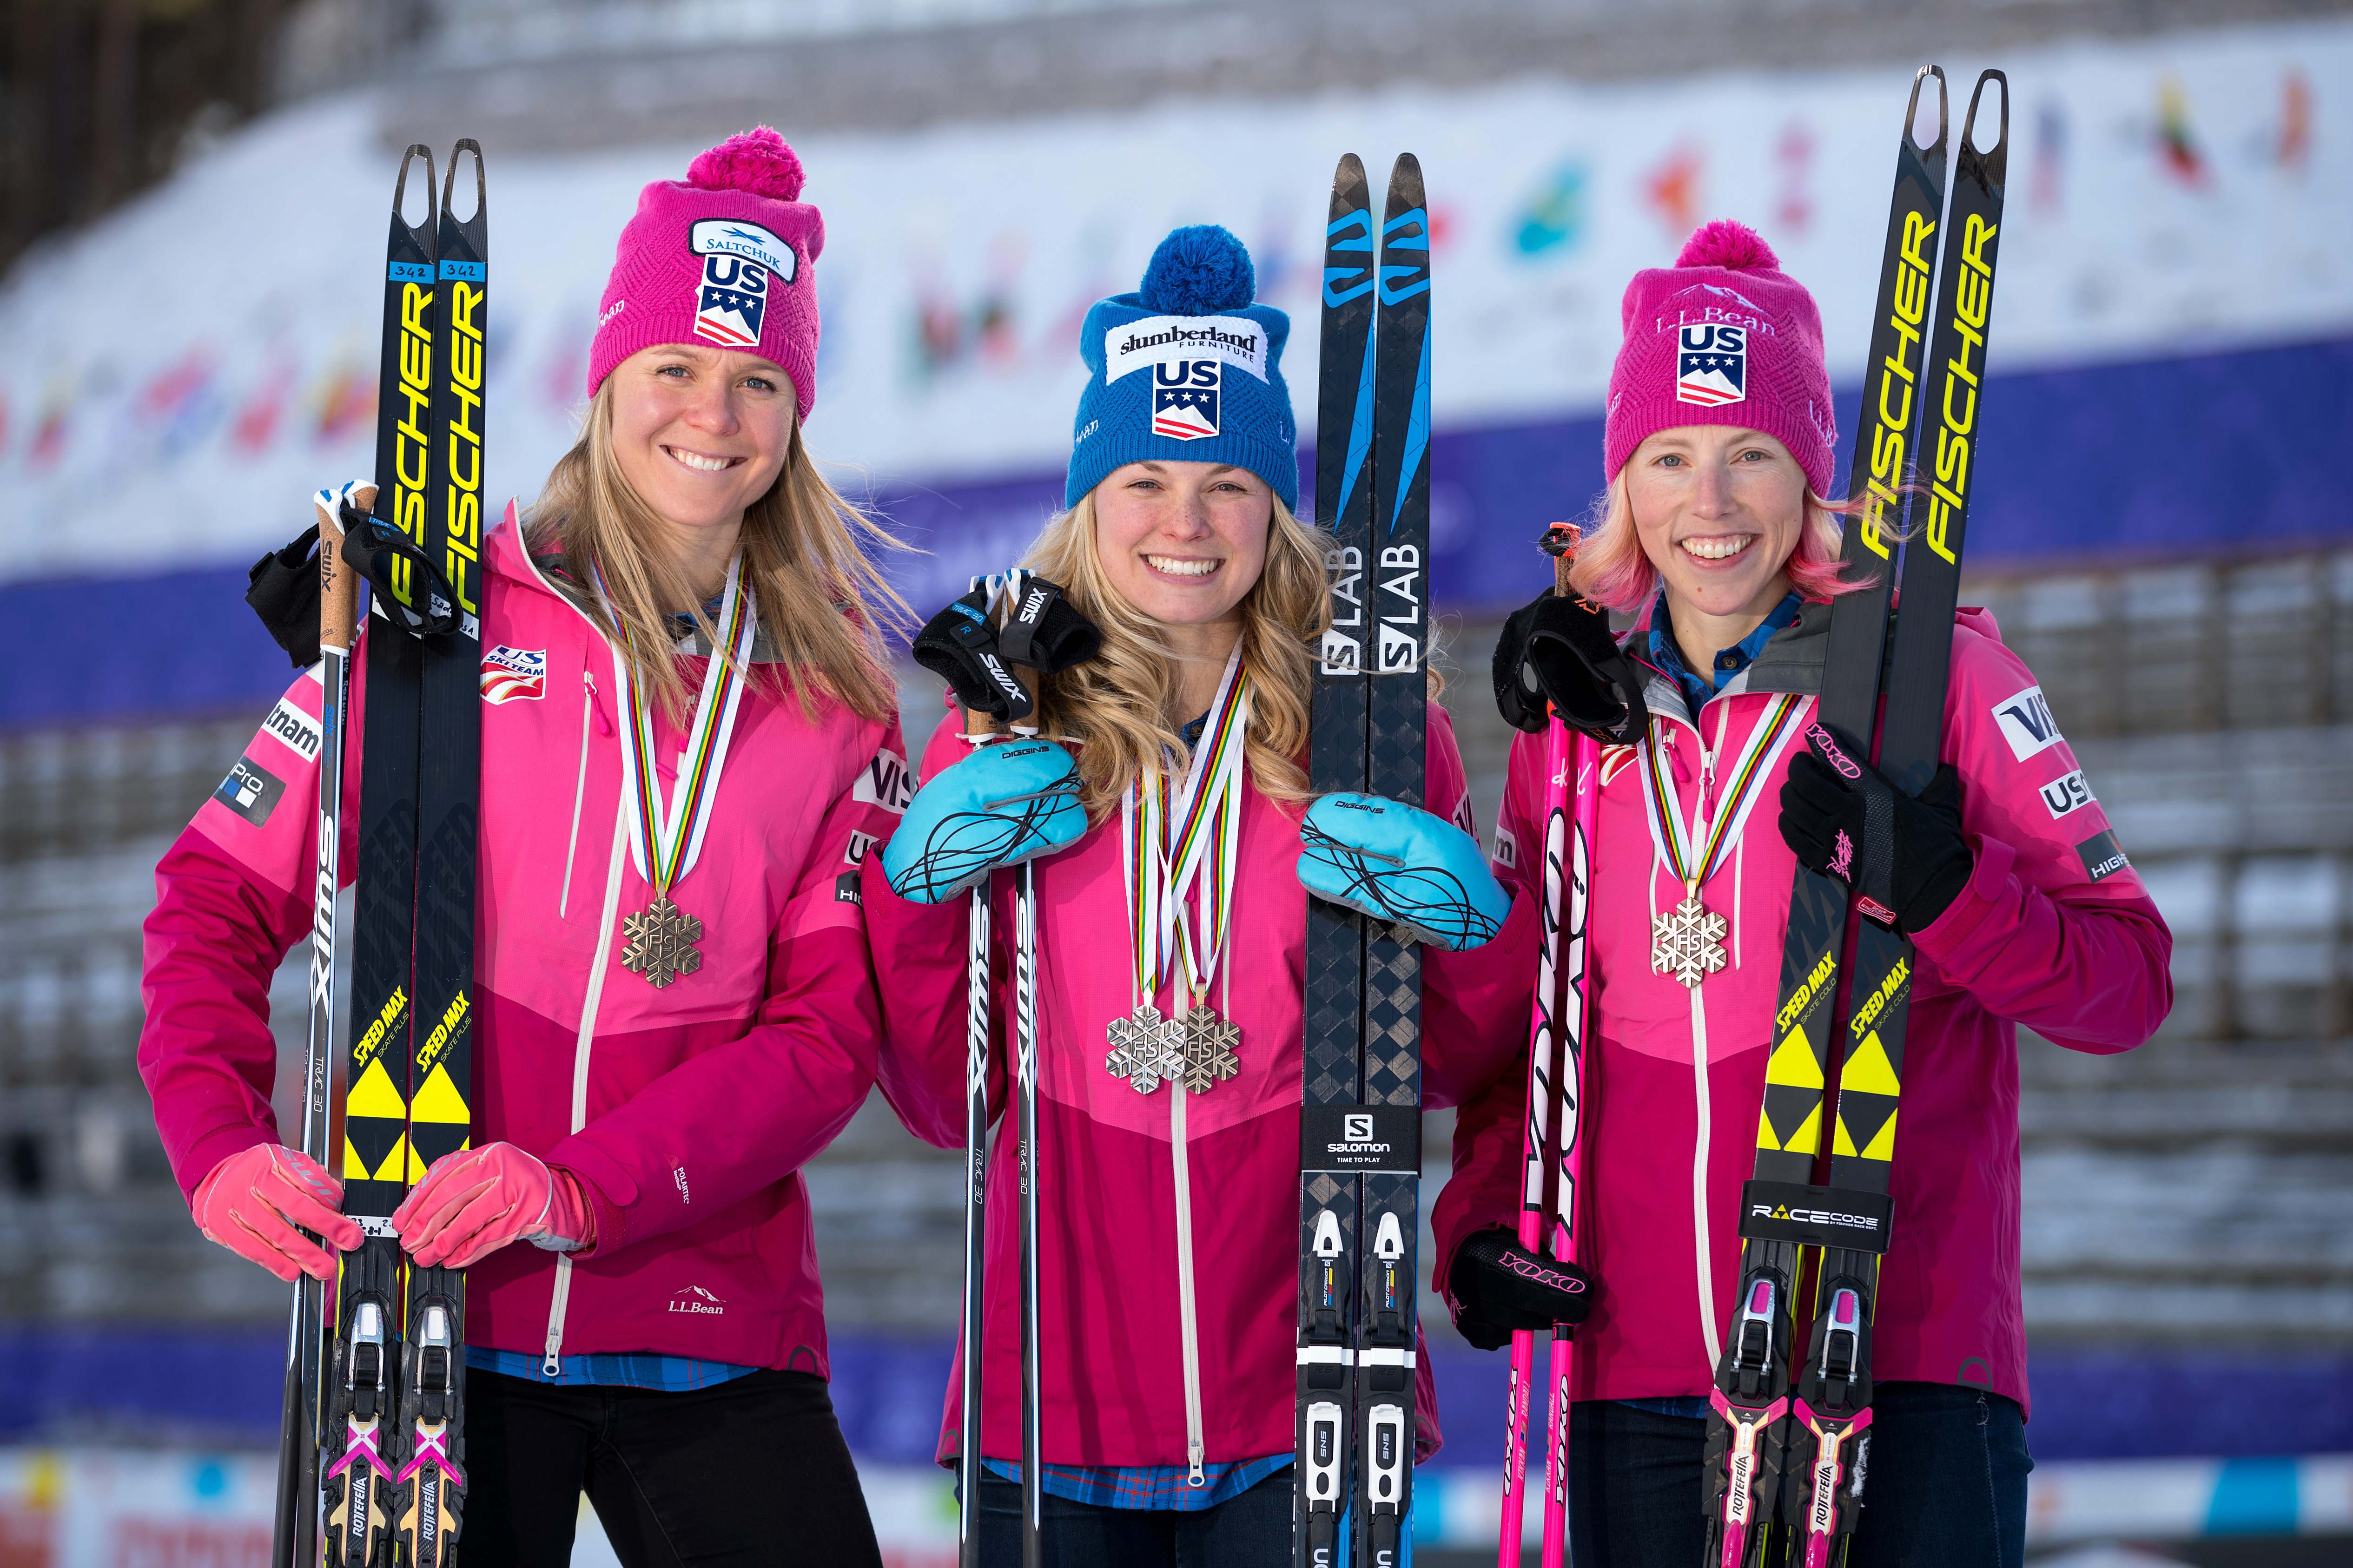 Team USA Medal winners Sadie Bjornsen, Jessica Diggins and Kikkan Randall pose for a portrait with their medals at the FIS Nordic World Ski Championships on March 5, 2017 in Lahti, Finland. Richard Heathcote—Getty Images.